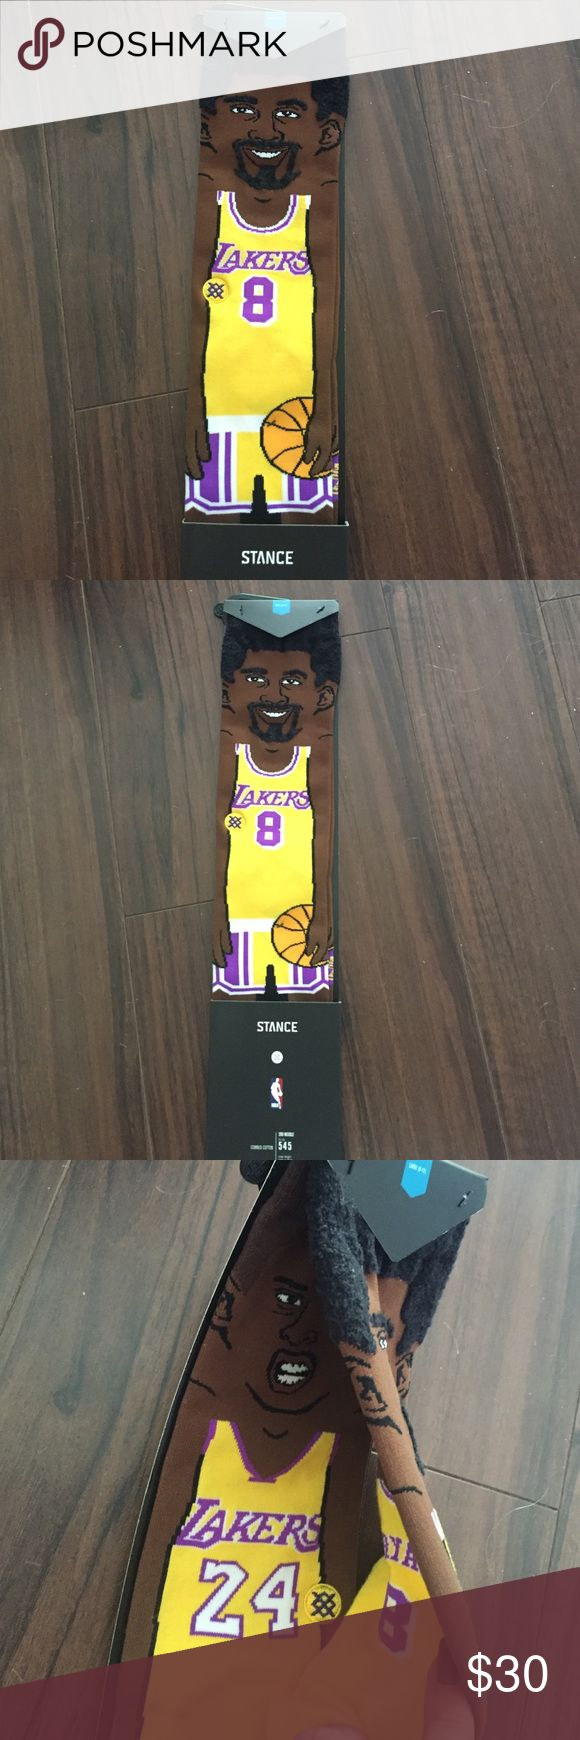 Rare Stance Kobe Socks Limited and sold out Stance cartoon Kobe ankle high socks. One sock is retro Kobe with a number 8 jersey and afro/goti. Other sock is new Kobe with a 24 jersey and shaved head. These are unisex socks and come in size Large (men's 9-12) but fit women no problem. I have a pair in and I wear size 8 and they are one of the comfiest socks I own. These were sold out immediately after Kobe's last game and retirement. It's a commemorative item to thank Kobe for all he did for…